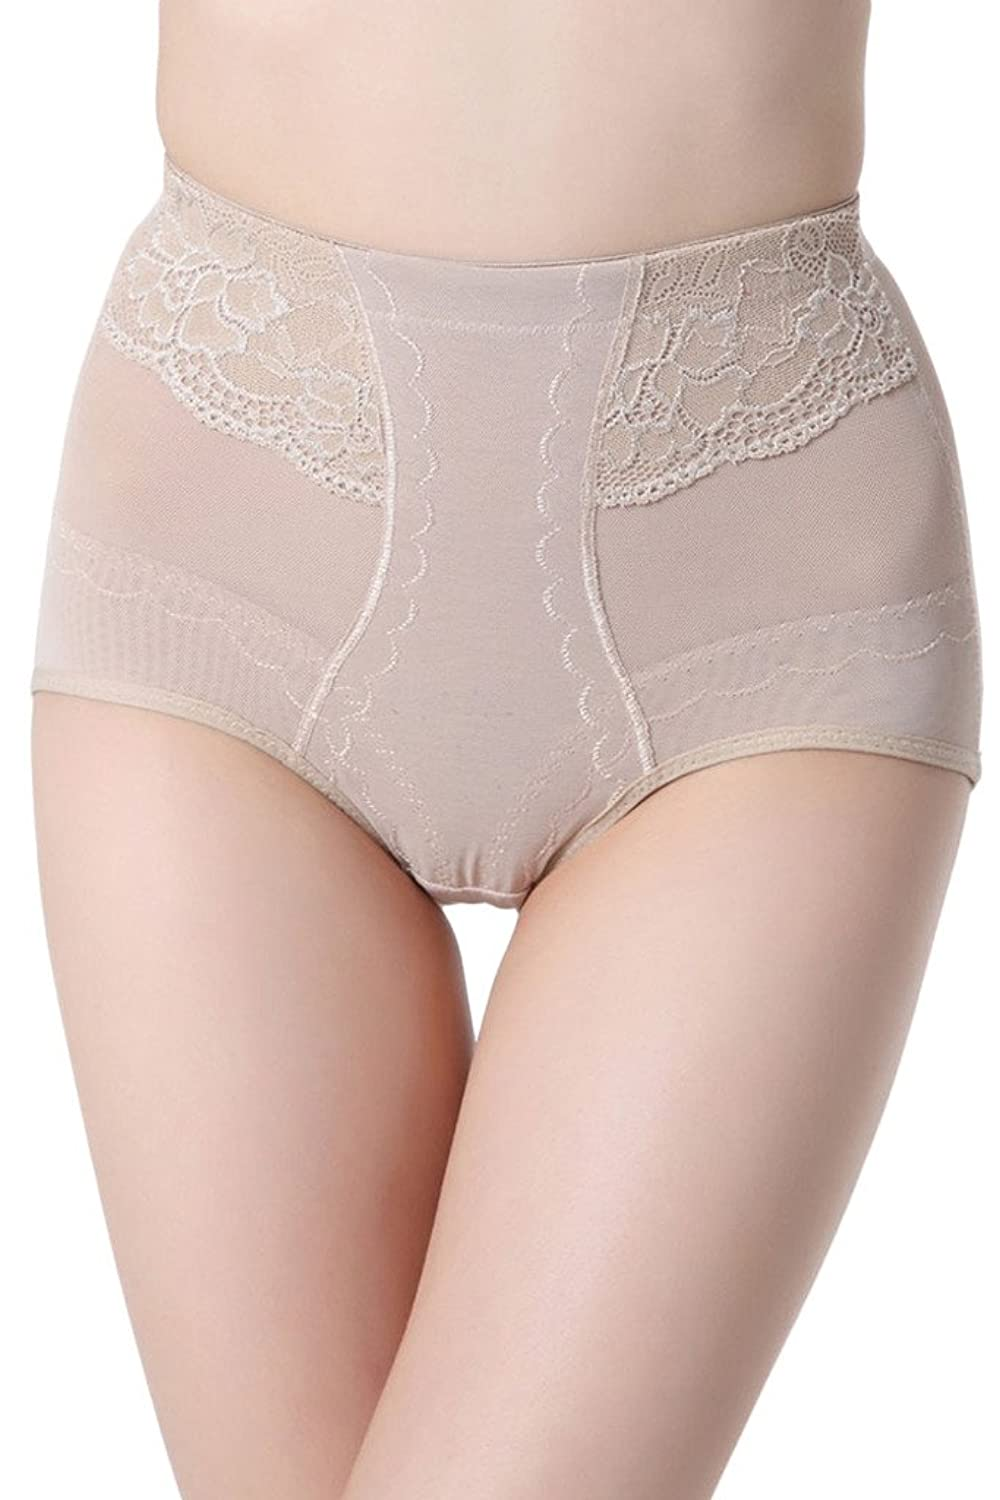 Lukis Hoher Taille Miederslip Spitze Transparent Slim Slip Panty